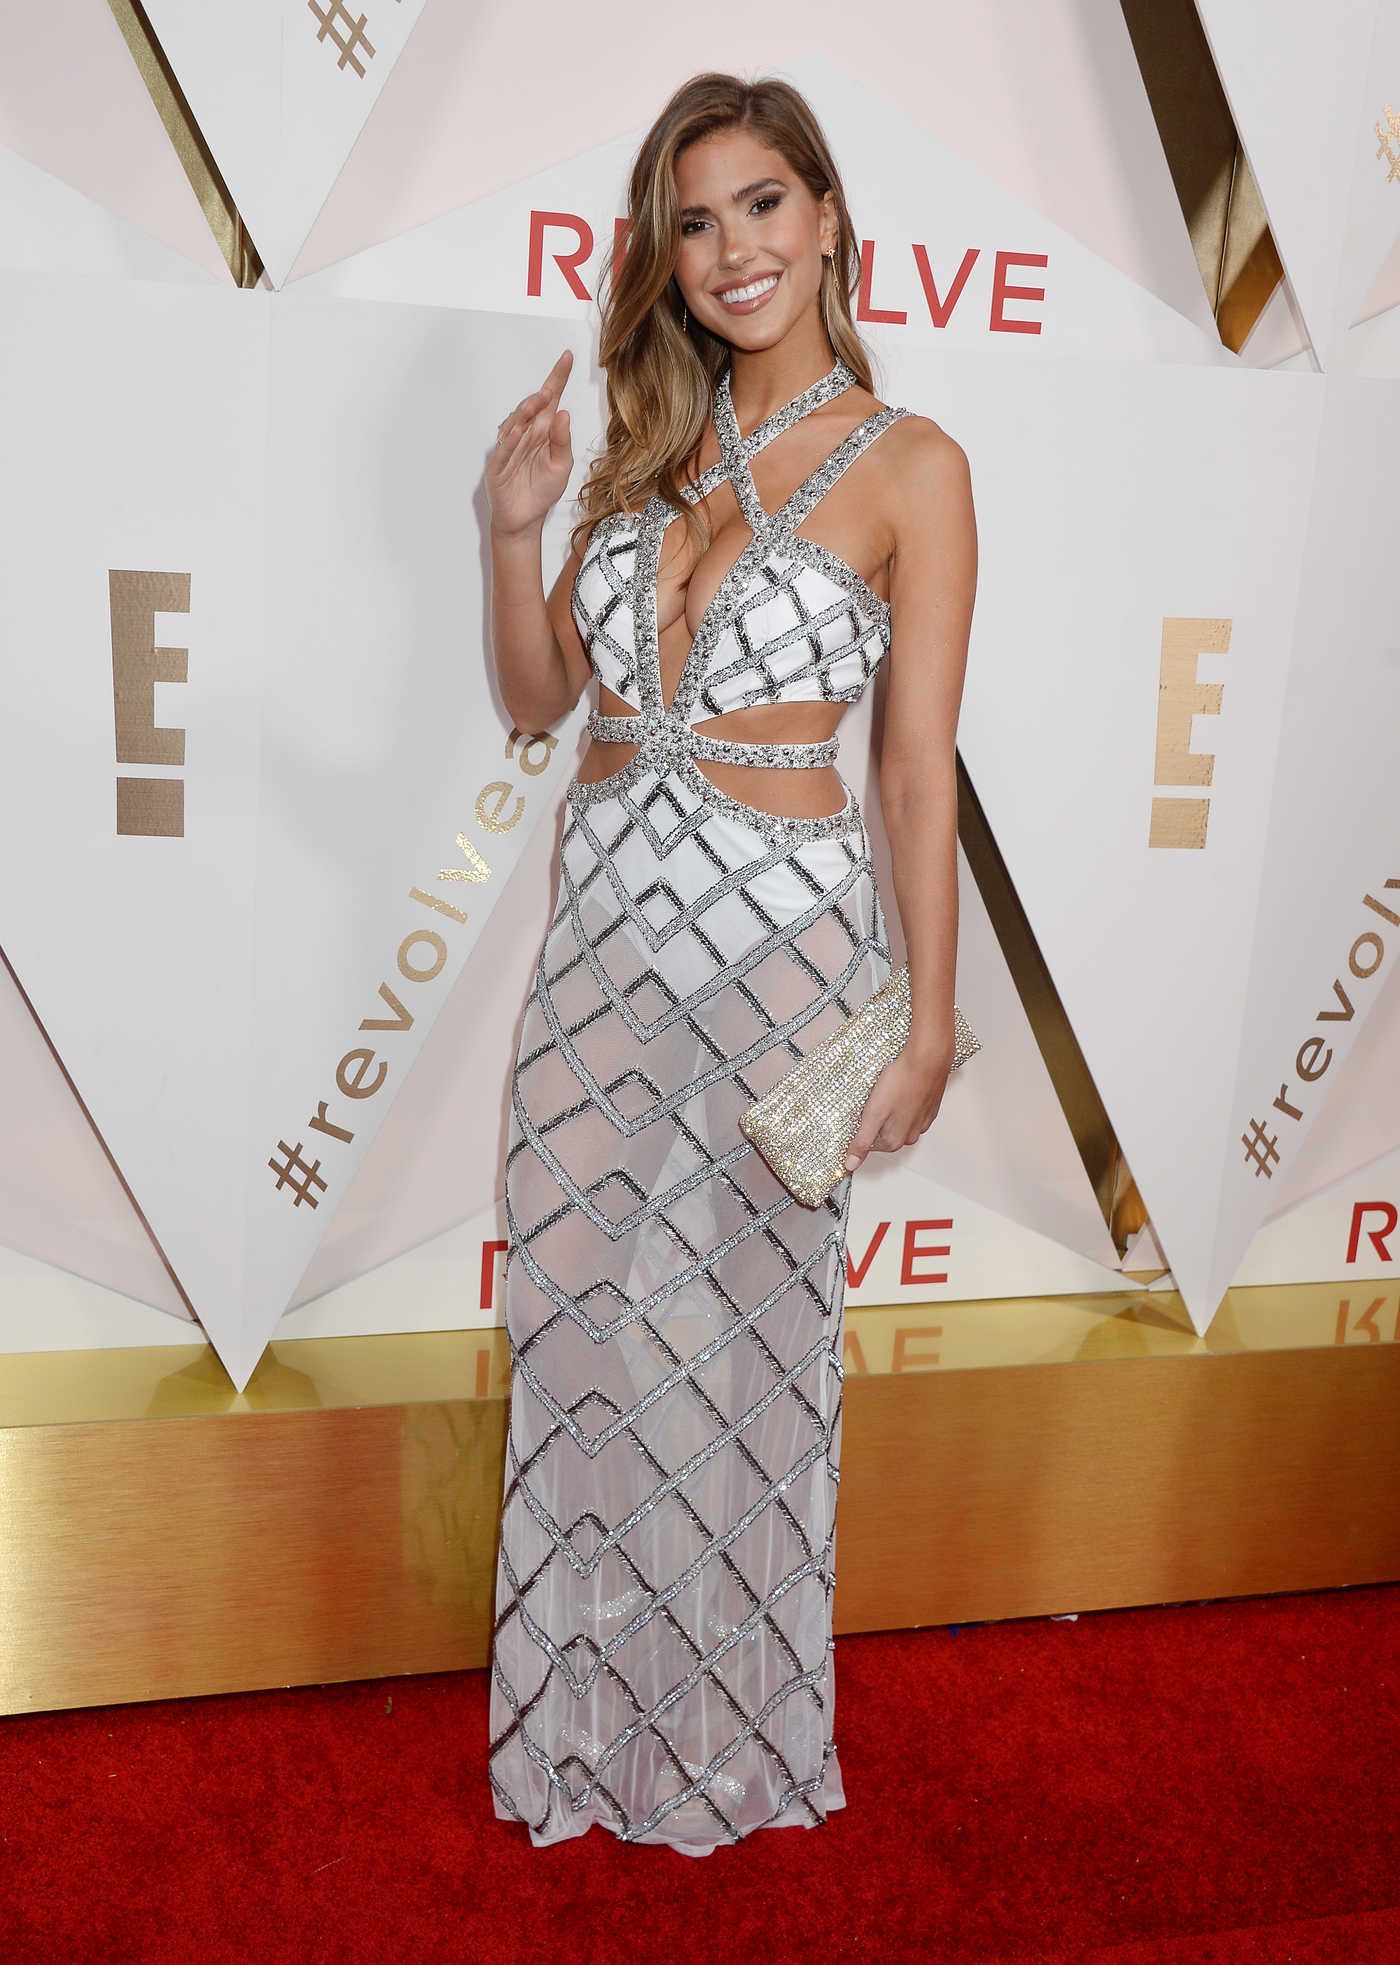 Kara Del Toro at the REVOLVE Awards in Los Angeles 11/02/2017